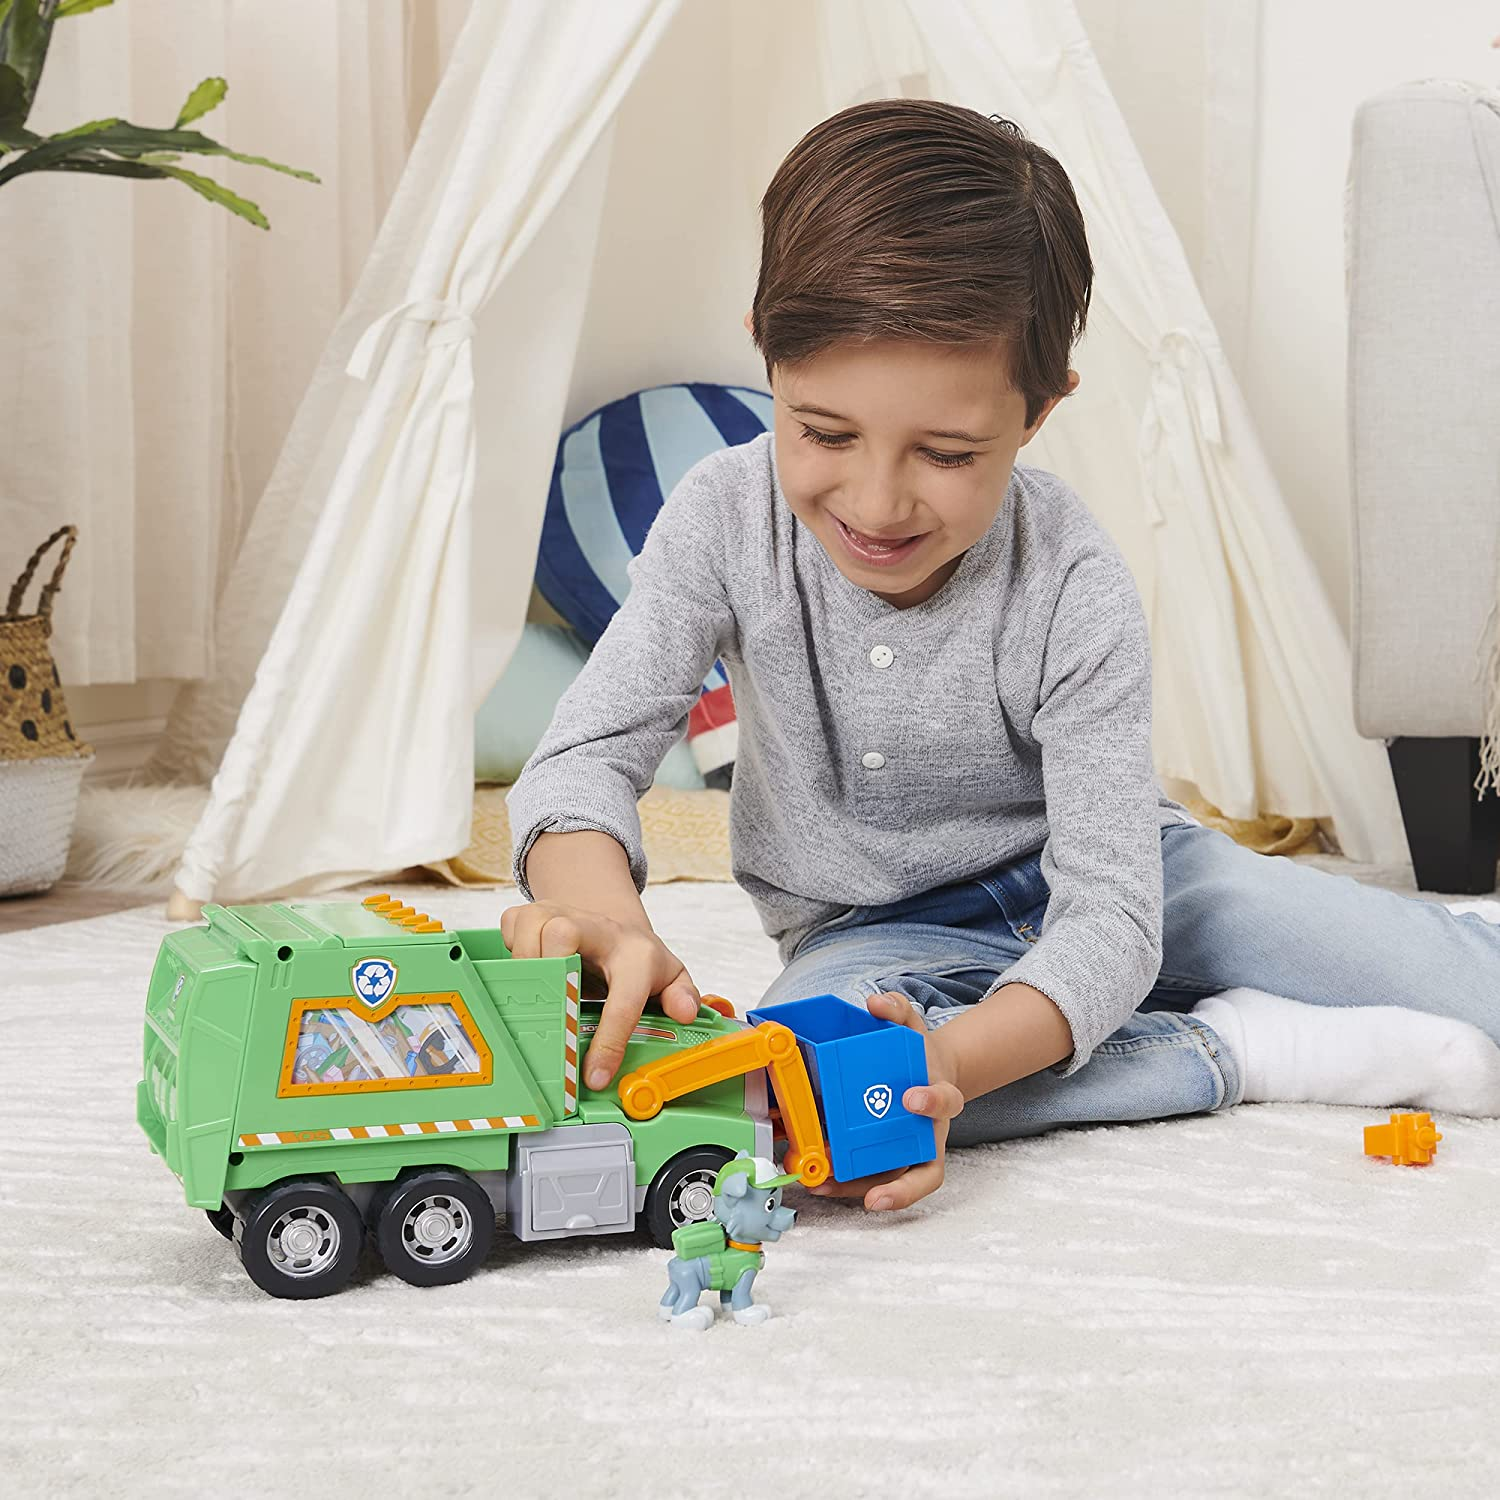 Rocky Reuse It Deluxe Truck - Boy with the toy, working out the functions